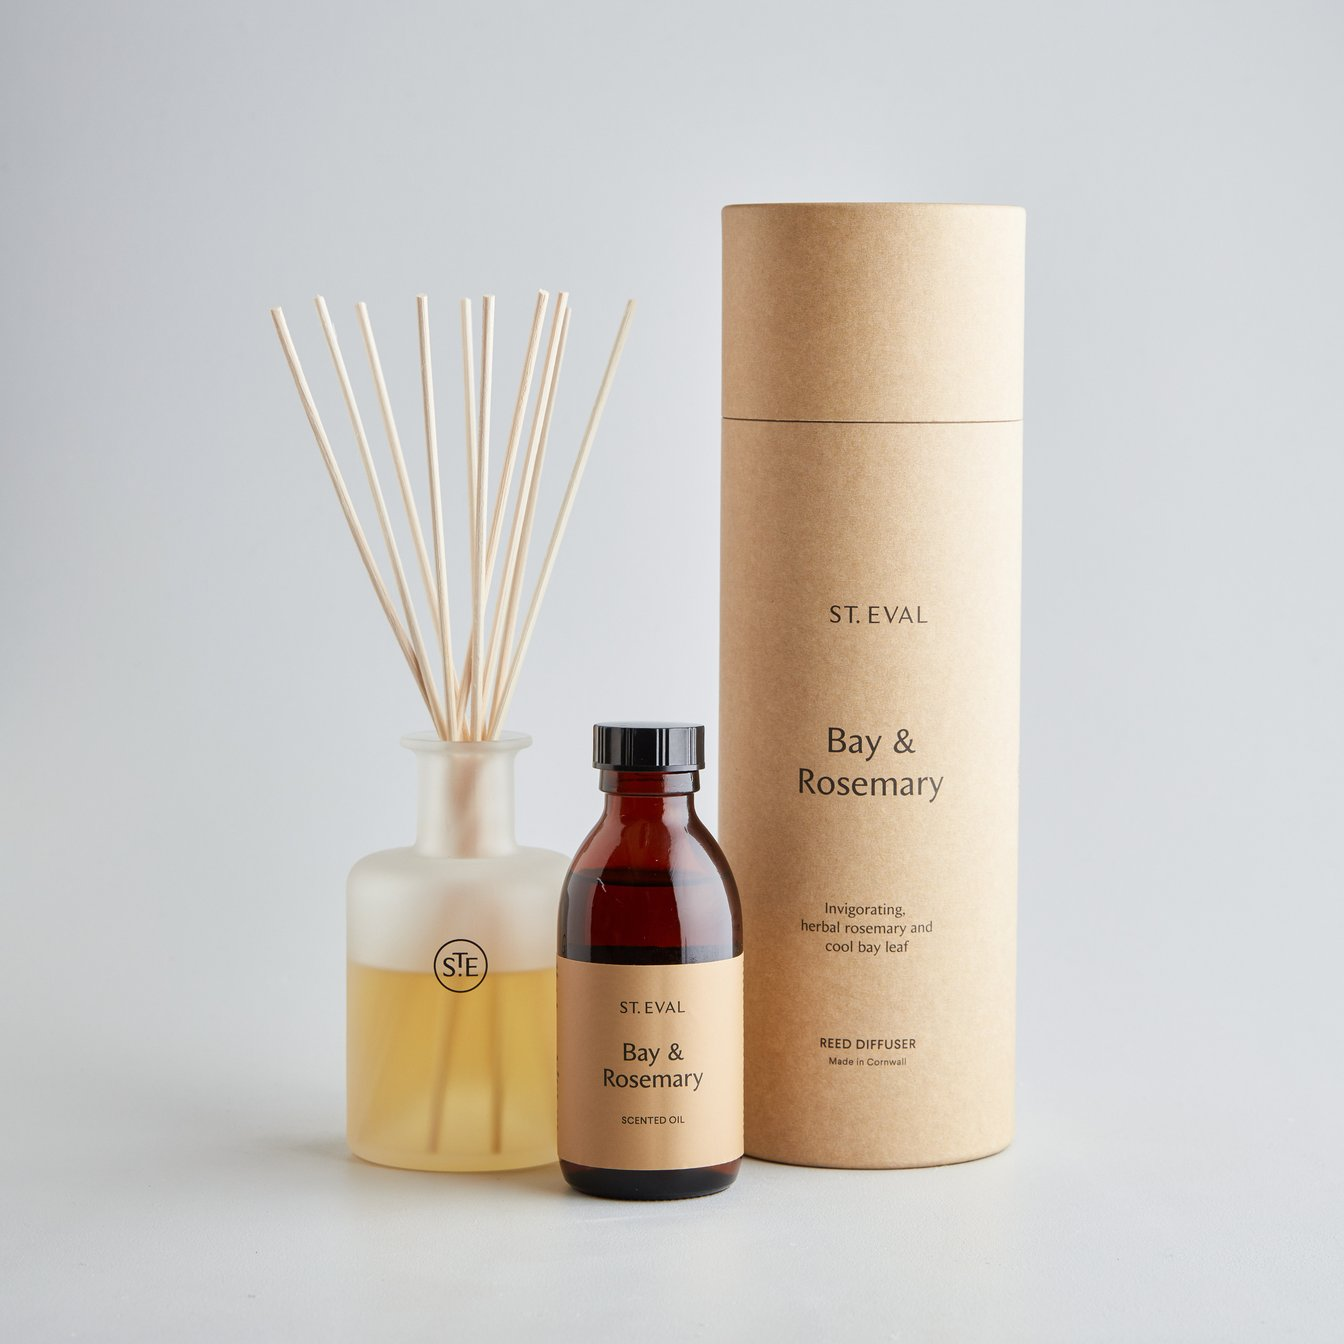 St Eval Bay and Rosemary Diffuser